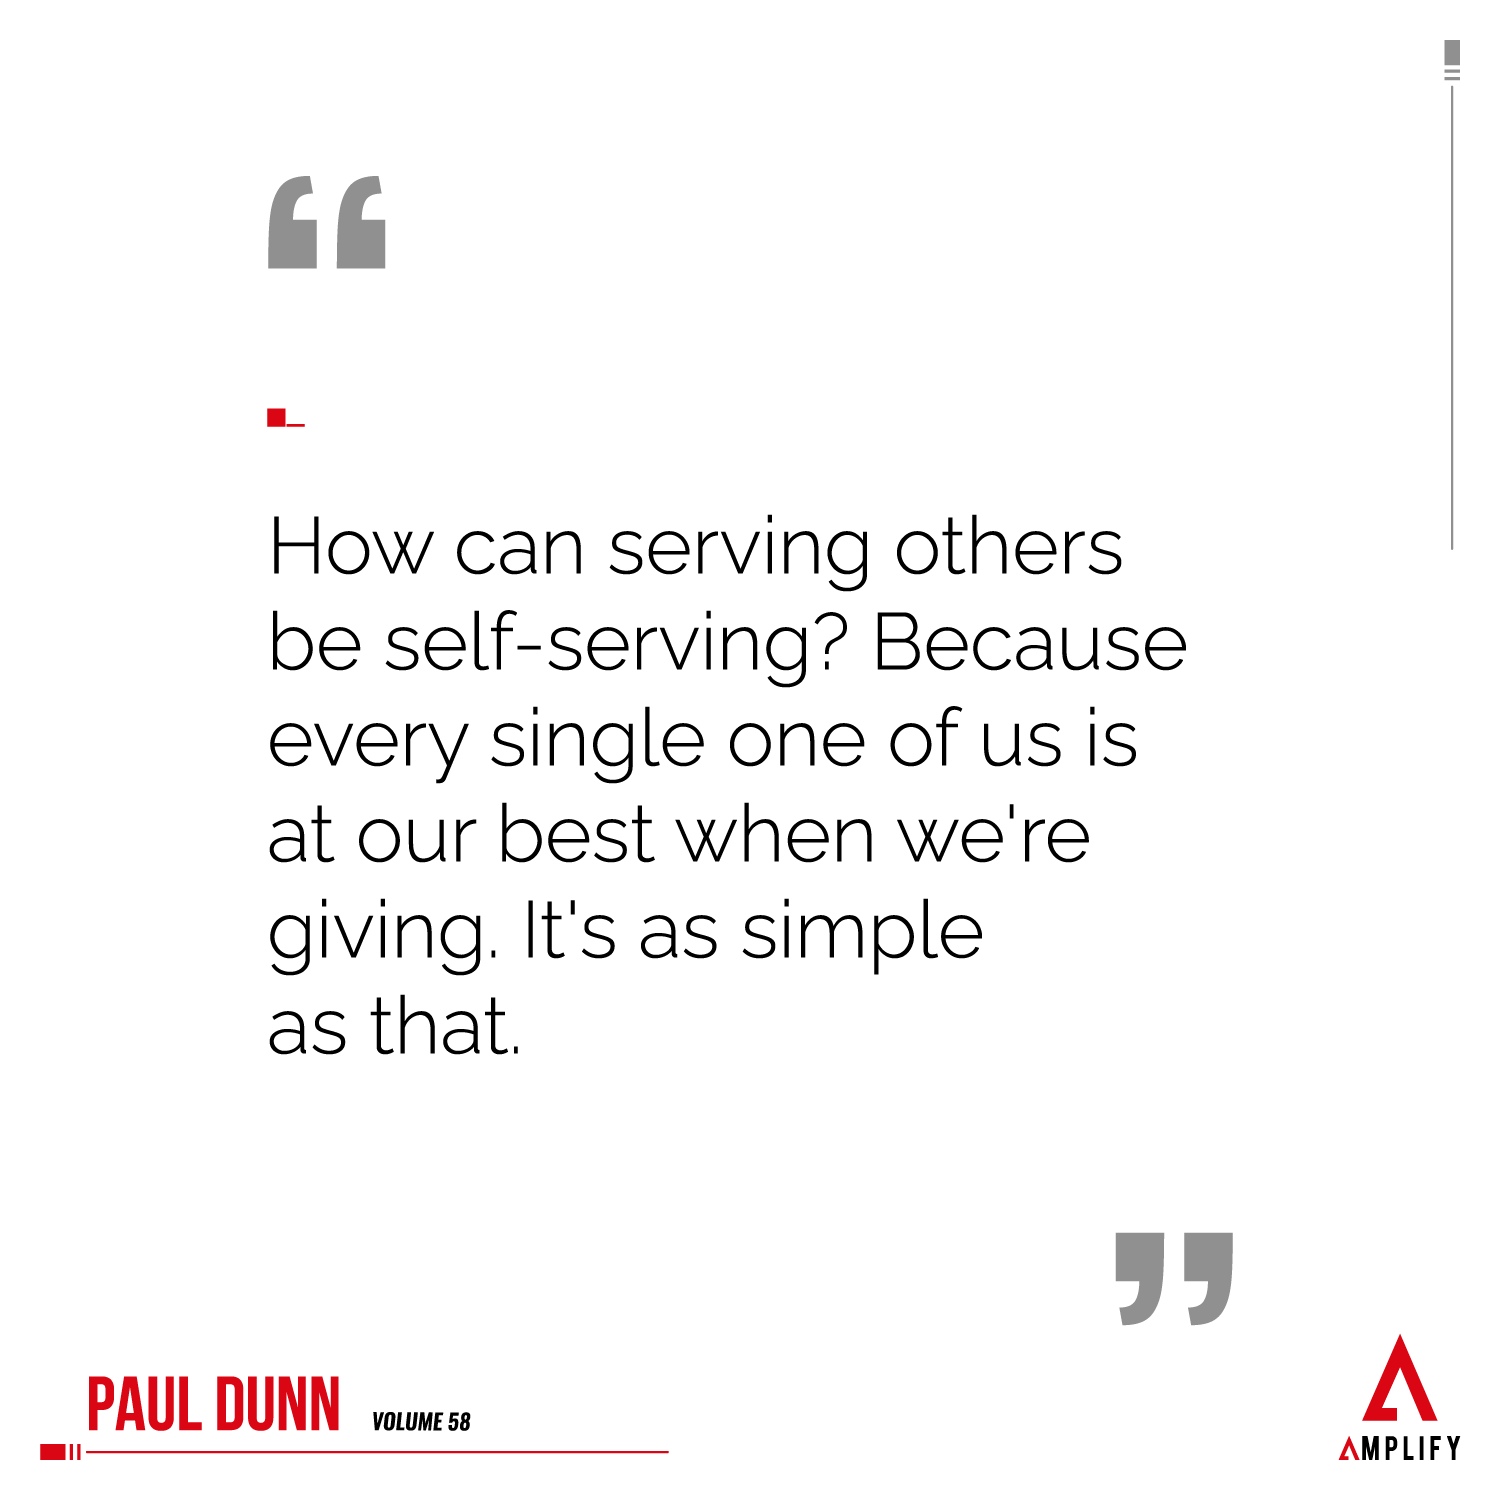 Quote: How can serving others be self-serving? Because every single one of us is at our best when we're giving. It's as simple as that.